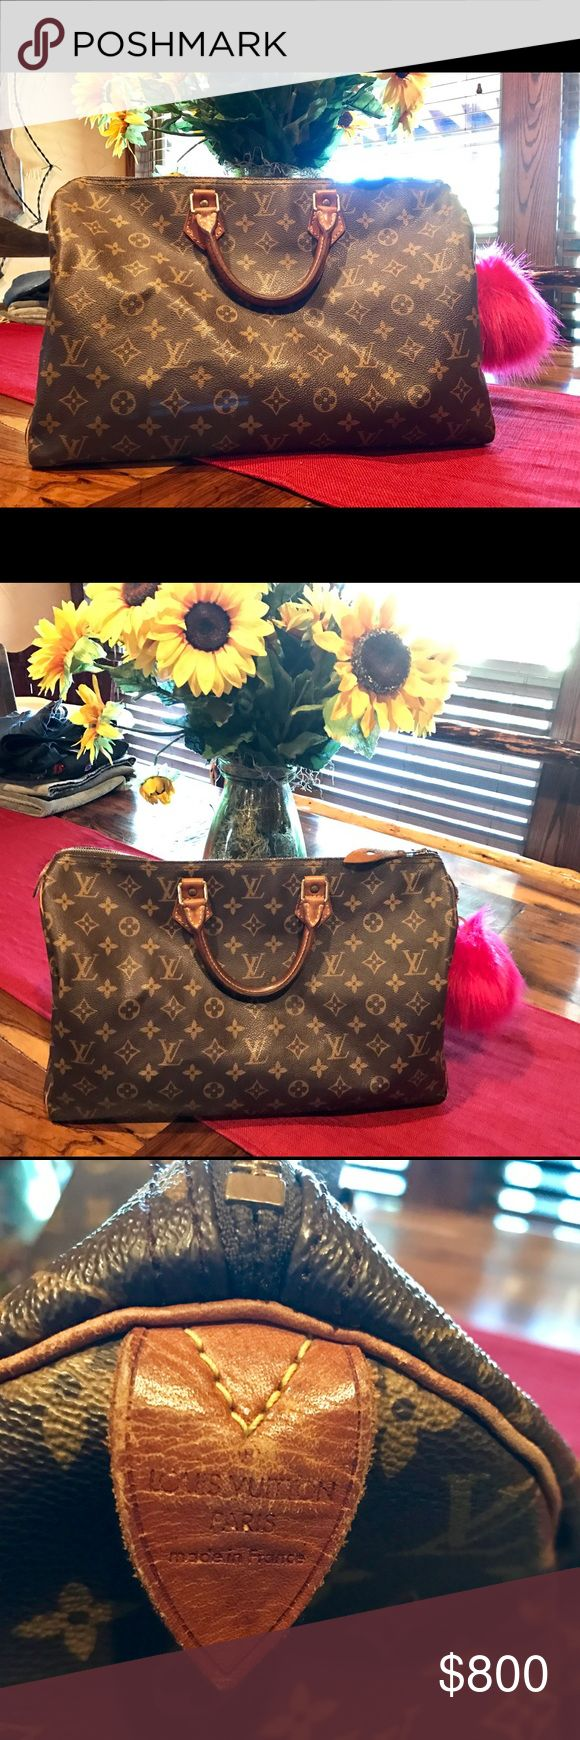 Louis Vuitton speedy 40 Used Louis Vuitton speedy 40.. Open to trade for another LV or Gucci. Louis Vuitton Bags